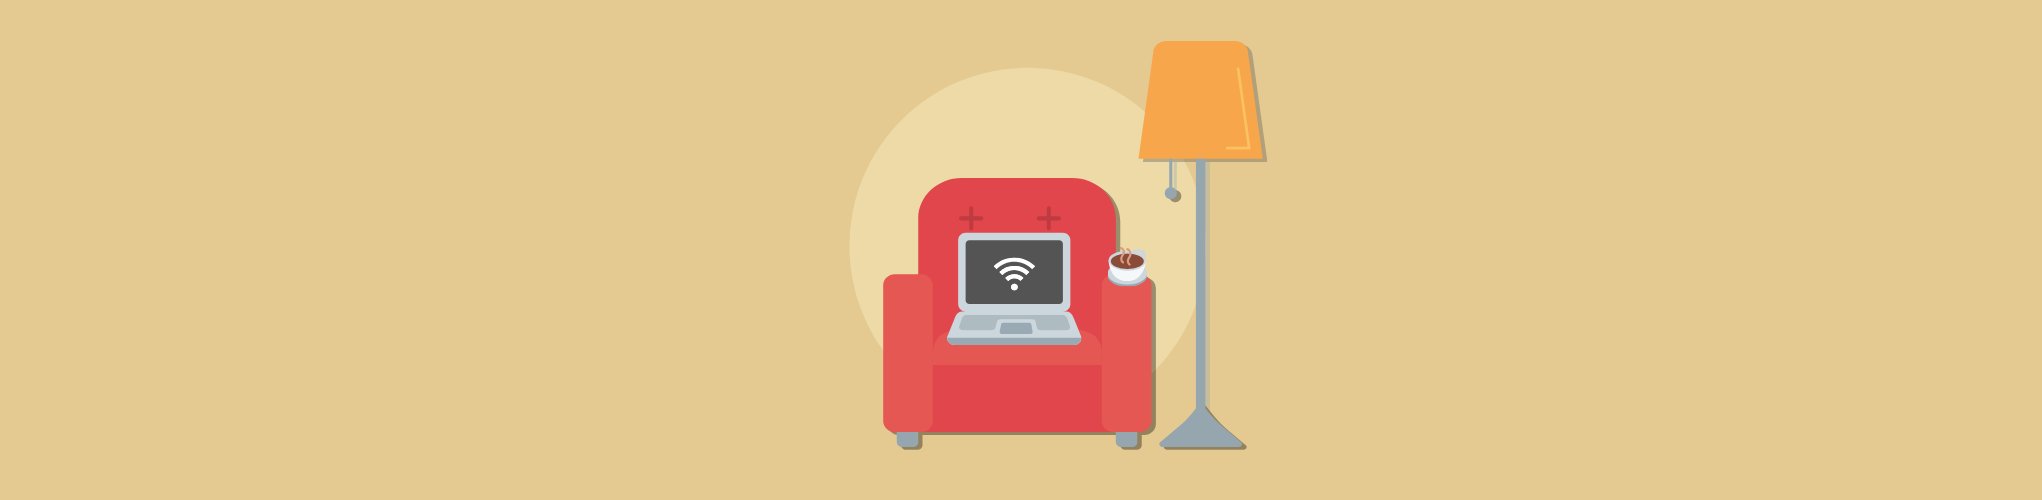 How to Work From Home - Tips For Remote Workers - Infographic